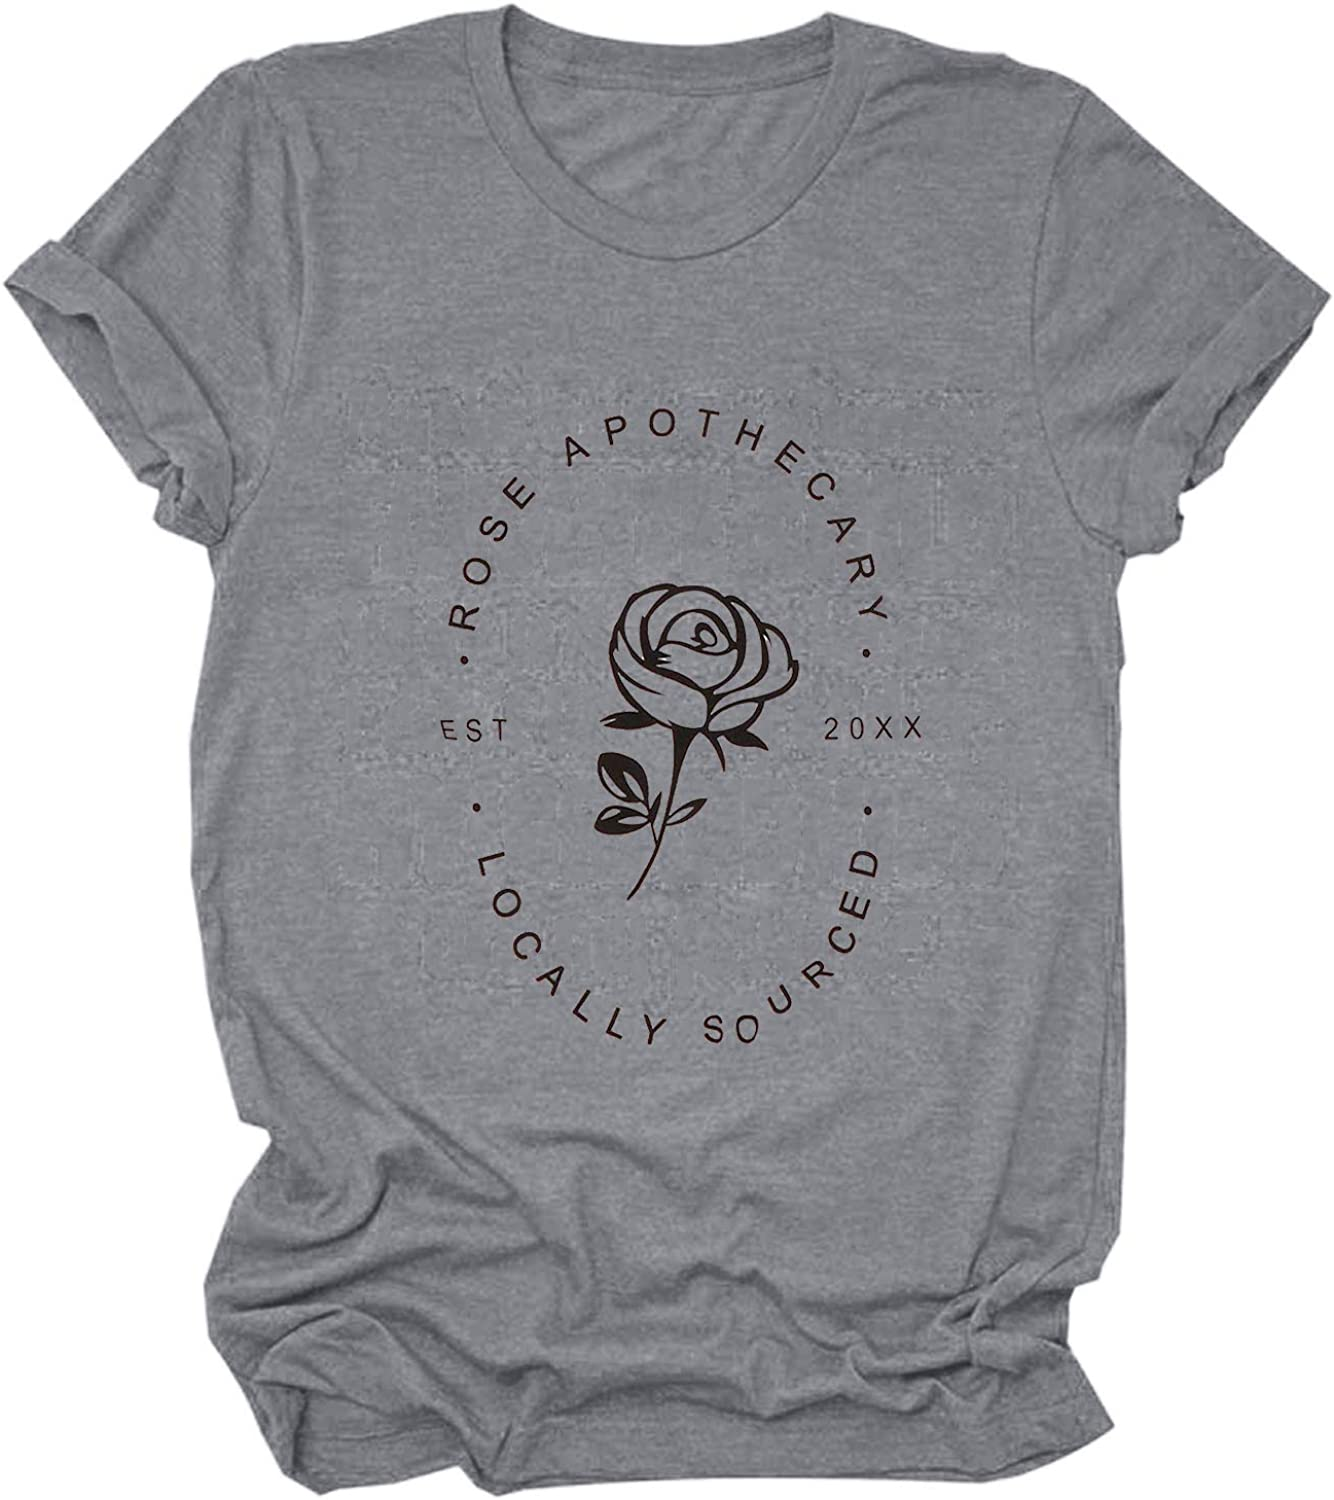 Womens Rose Apothecary Shirts Locally Sourced Graphic Tees with Sayings Funny Short Sleeve Causal Holiday Tops